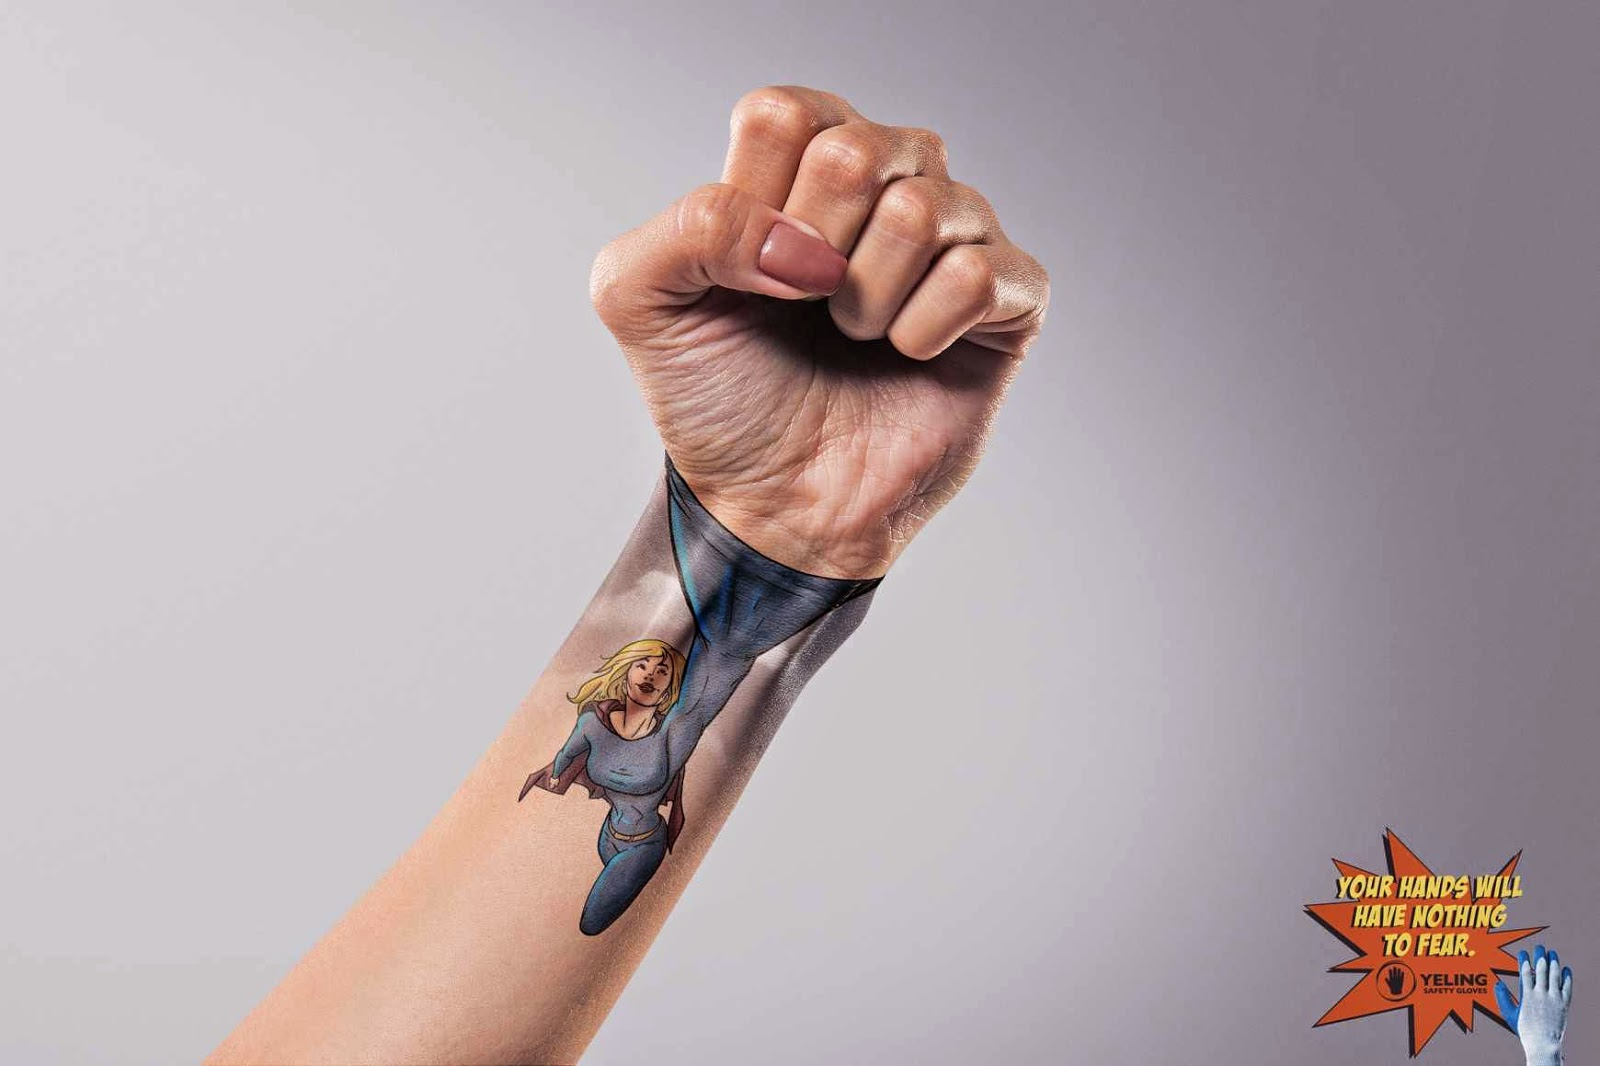 Publicidad y creatividad -advertising and creativity - Body paint